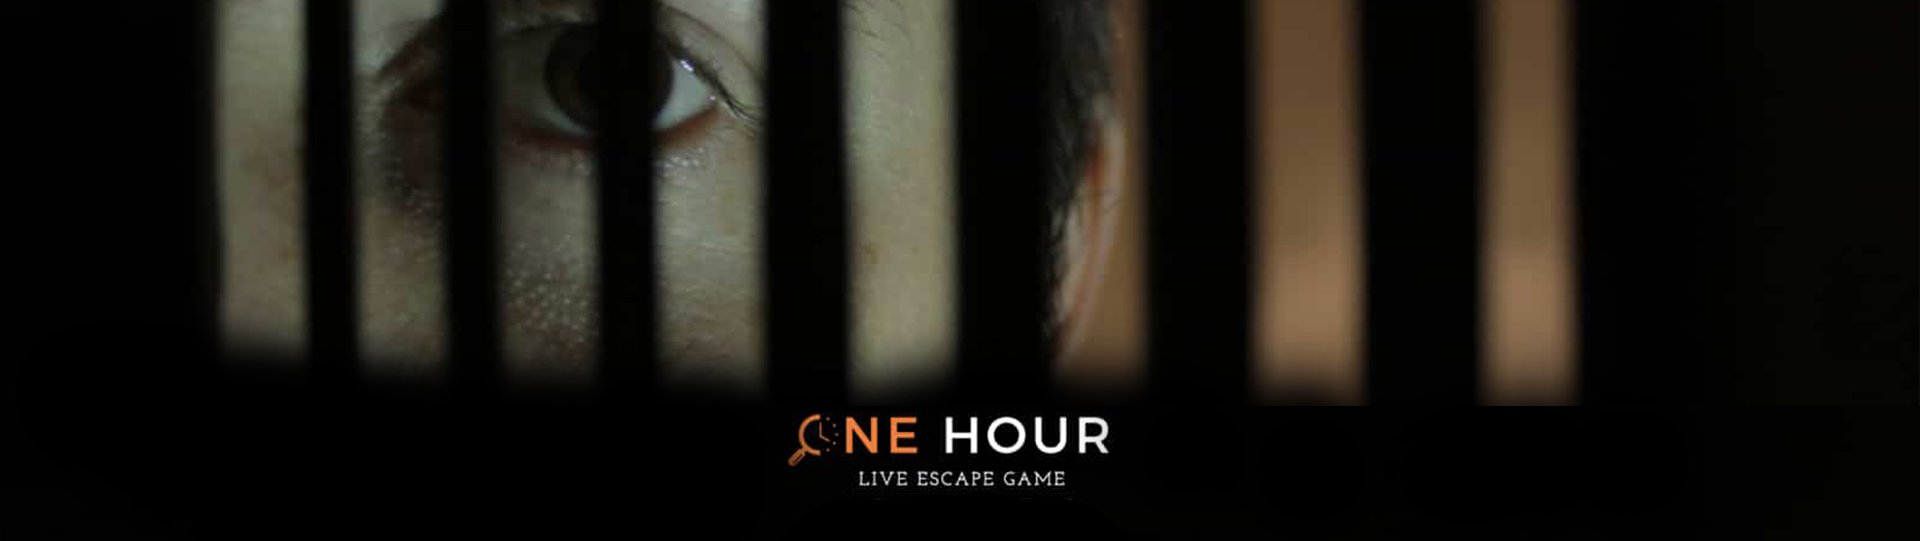 L'escape game One Hour pour 2 personnes à Paris.jpg